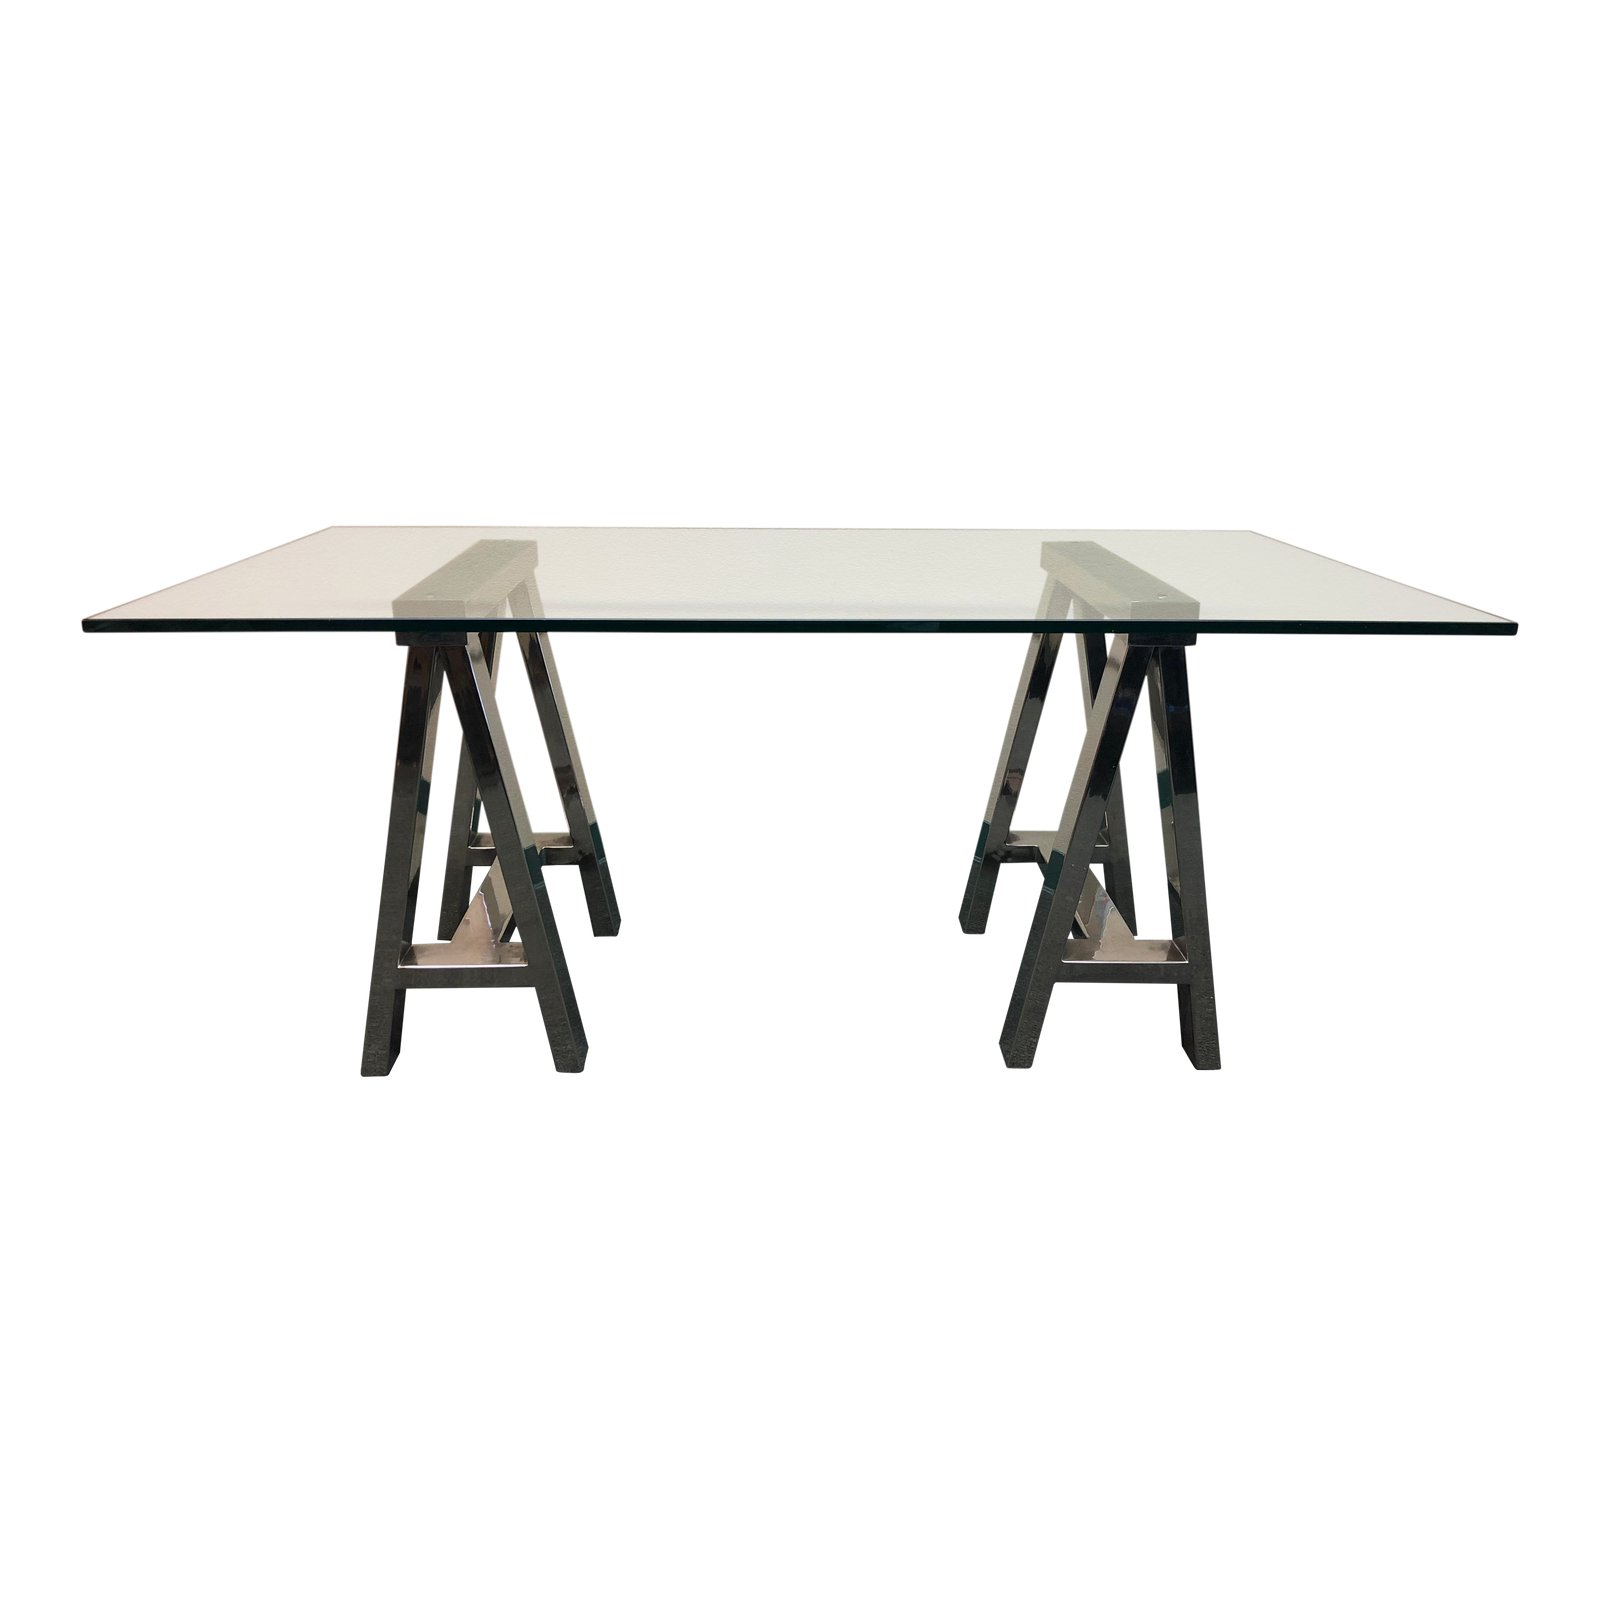 Mason Glass + Polished Nickel Trestle Desk, From Williams